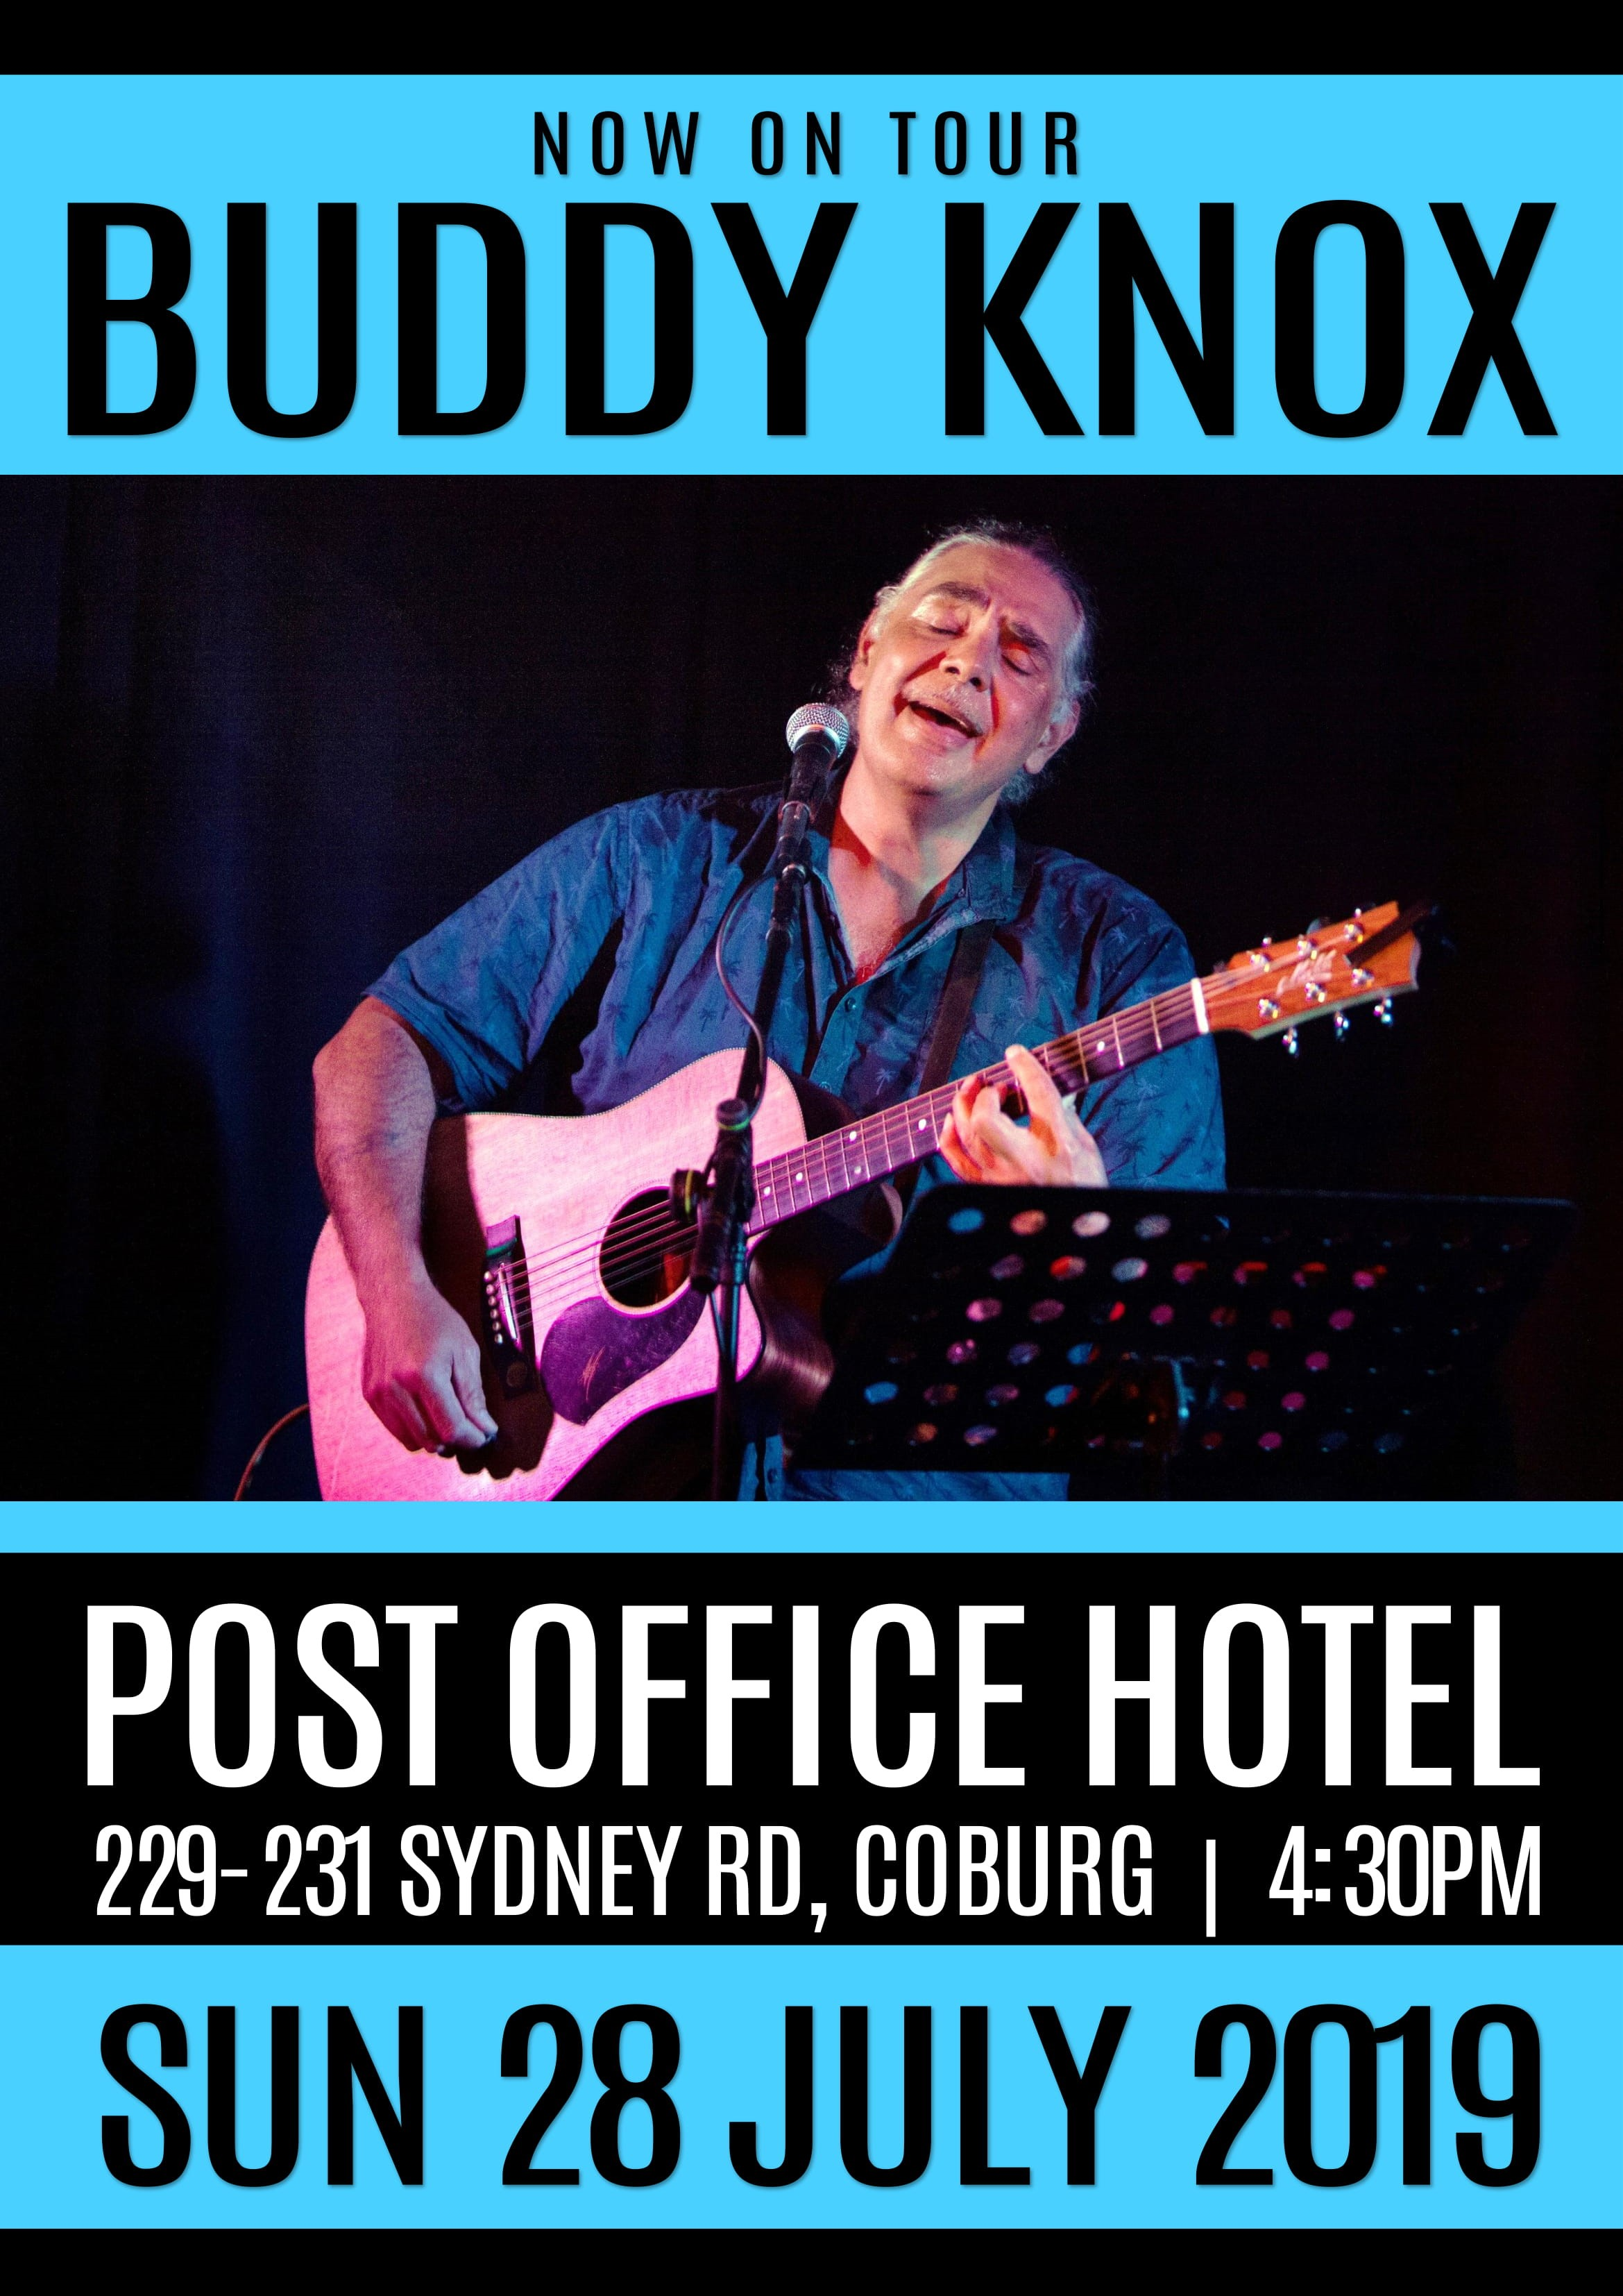 Gigs - POST OFFICE HOTEL